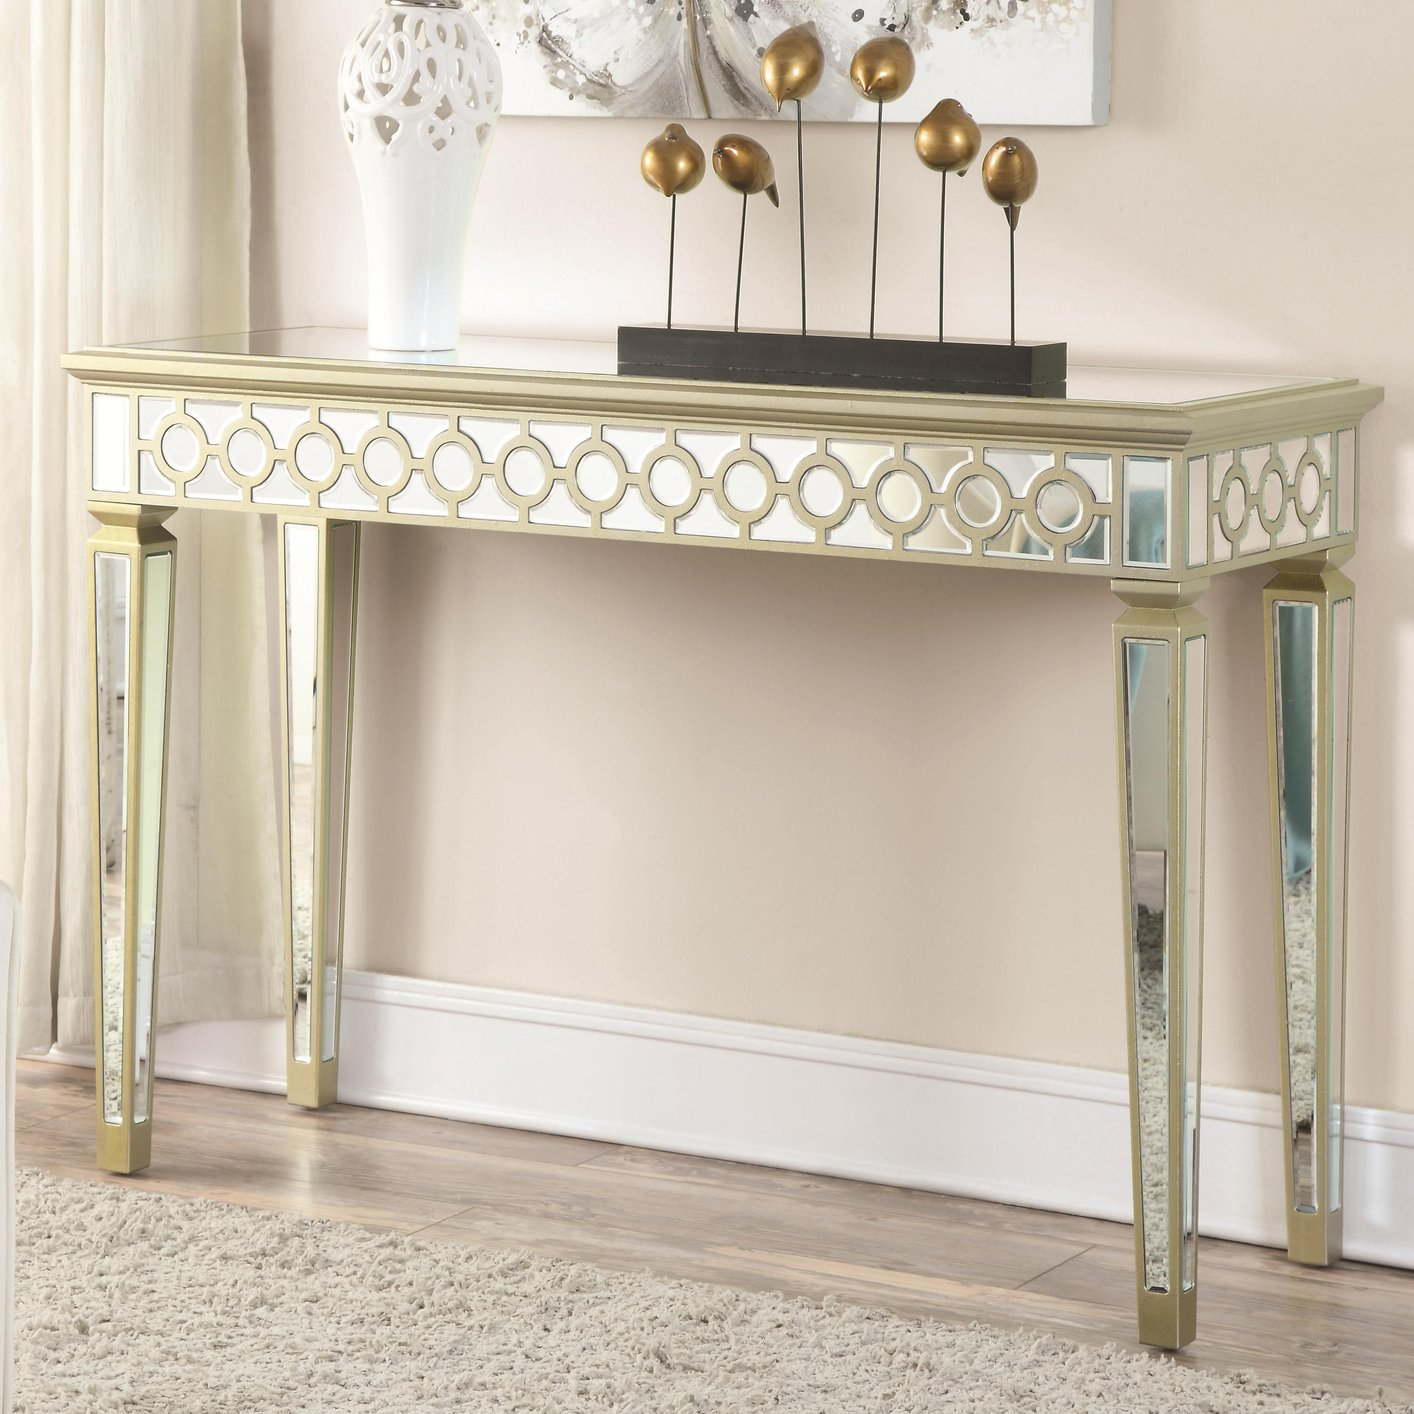 Beige Wood Console Table Steal A Sofa Furniture Outlet